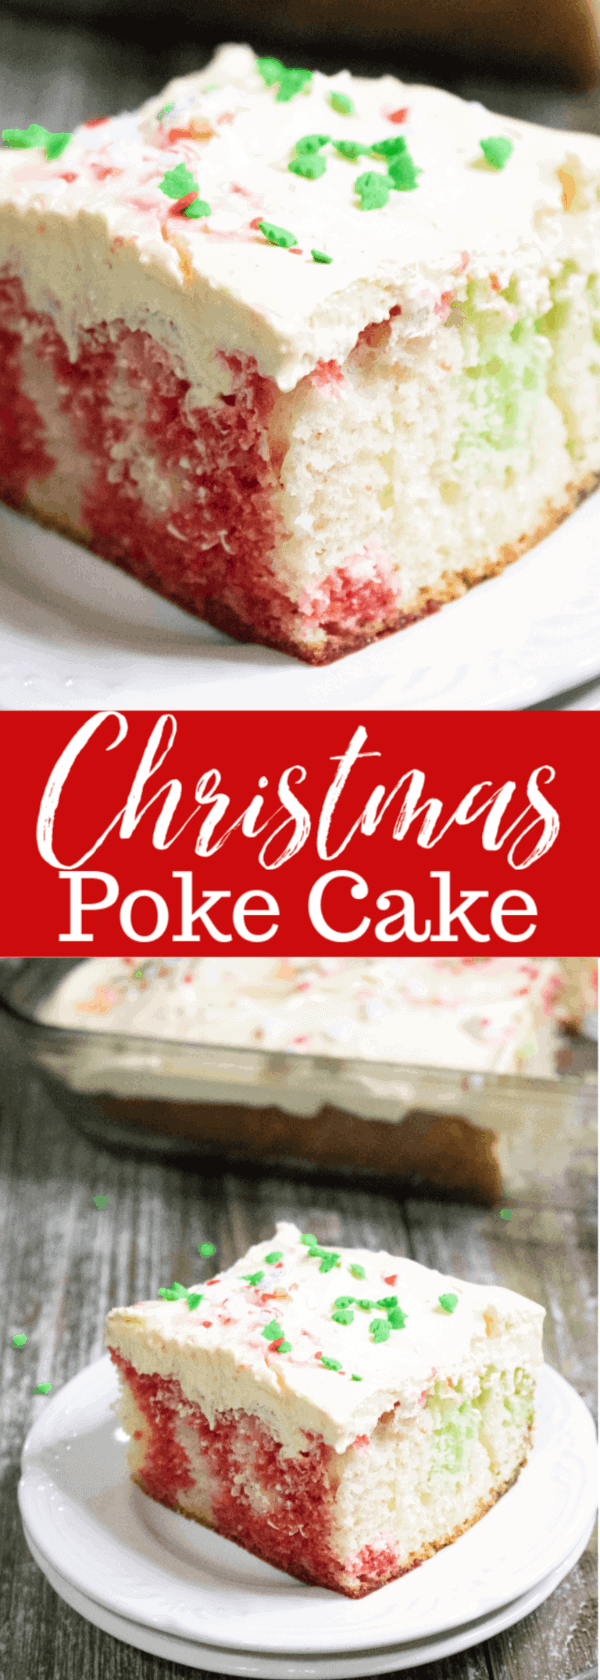 Festive and delicious Christmas Poke Cake. Delight your friends and family with this beautiful andyummy cake. #mooreorlesscooking #Christmas #cake #pokecake via @Mooreorlesscook